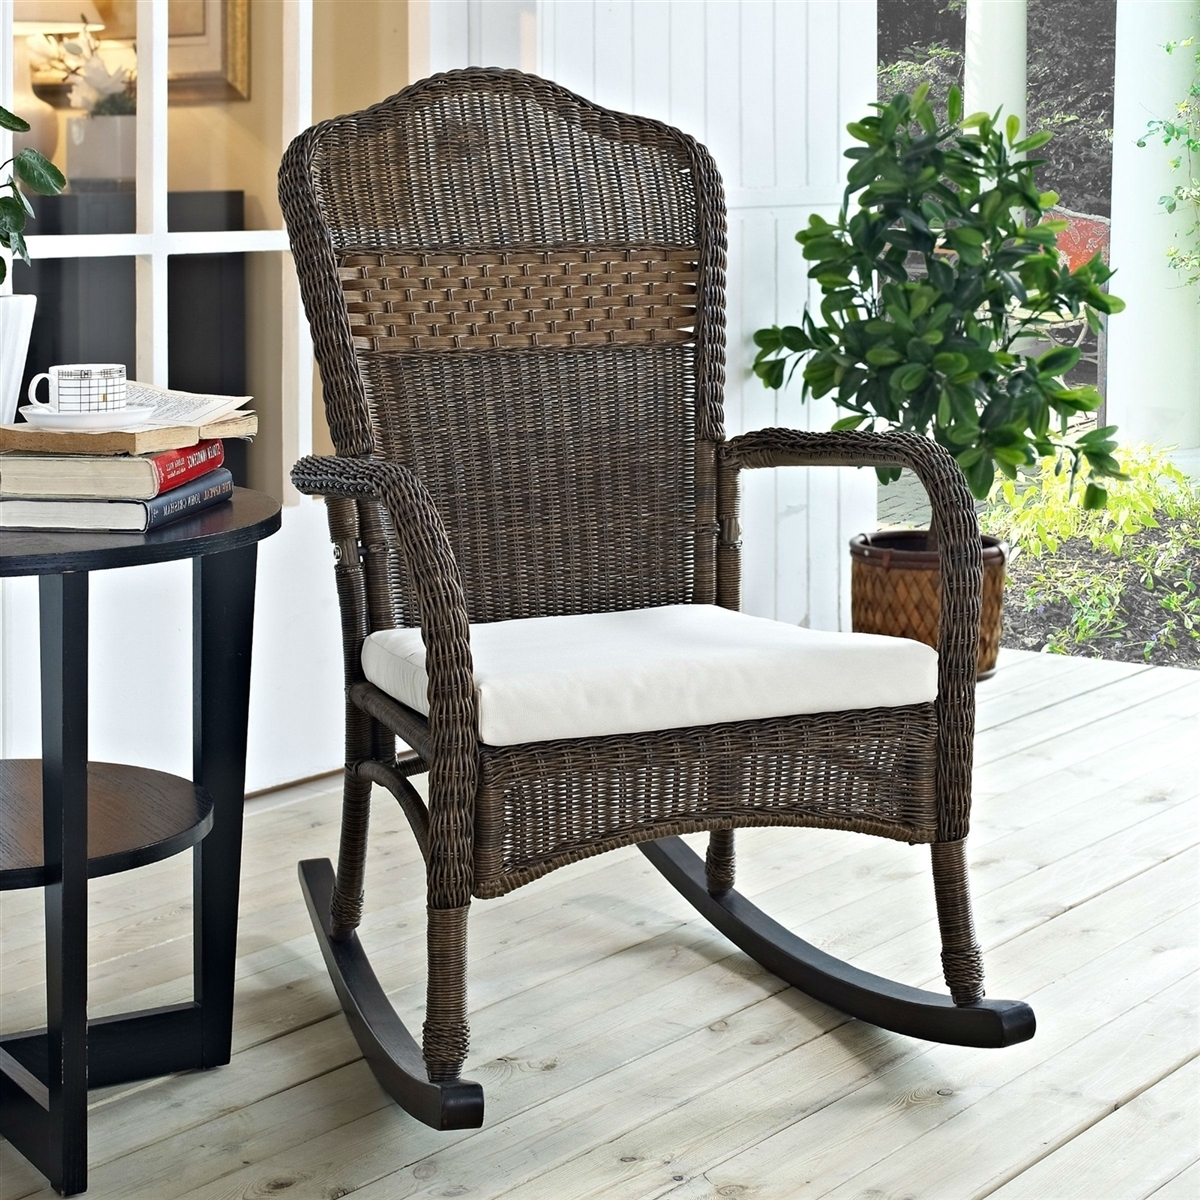 Wicker Patio Rocking Chair Mocha Indooroutdoor With Beige Cushion With Regard To Outdoor Rocking Chairs With Cushions Good Outdoor Rocking Chairs With Cushions